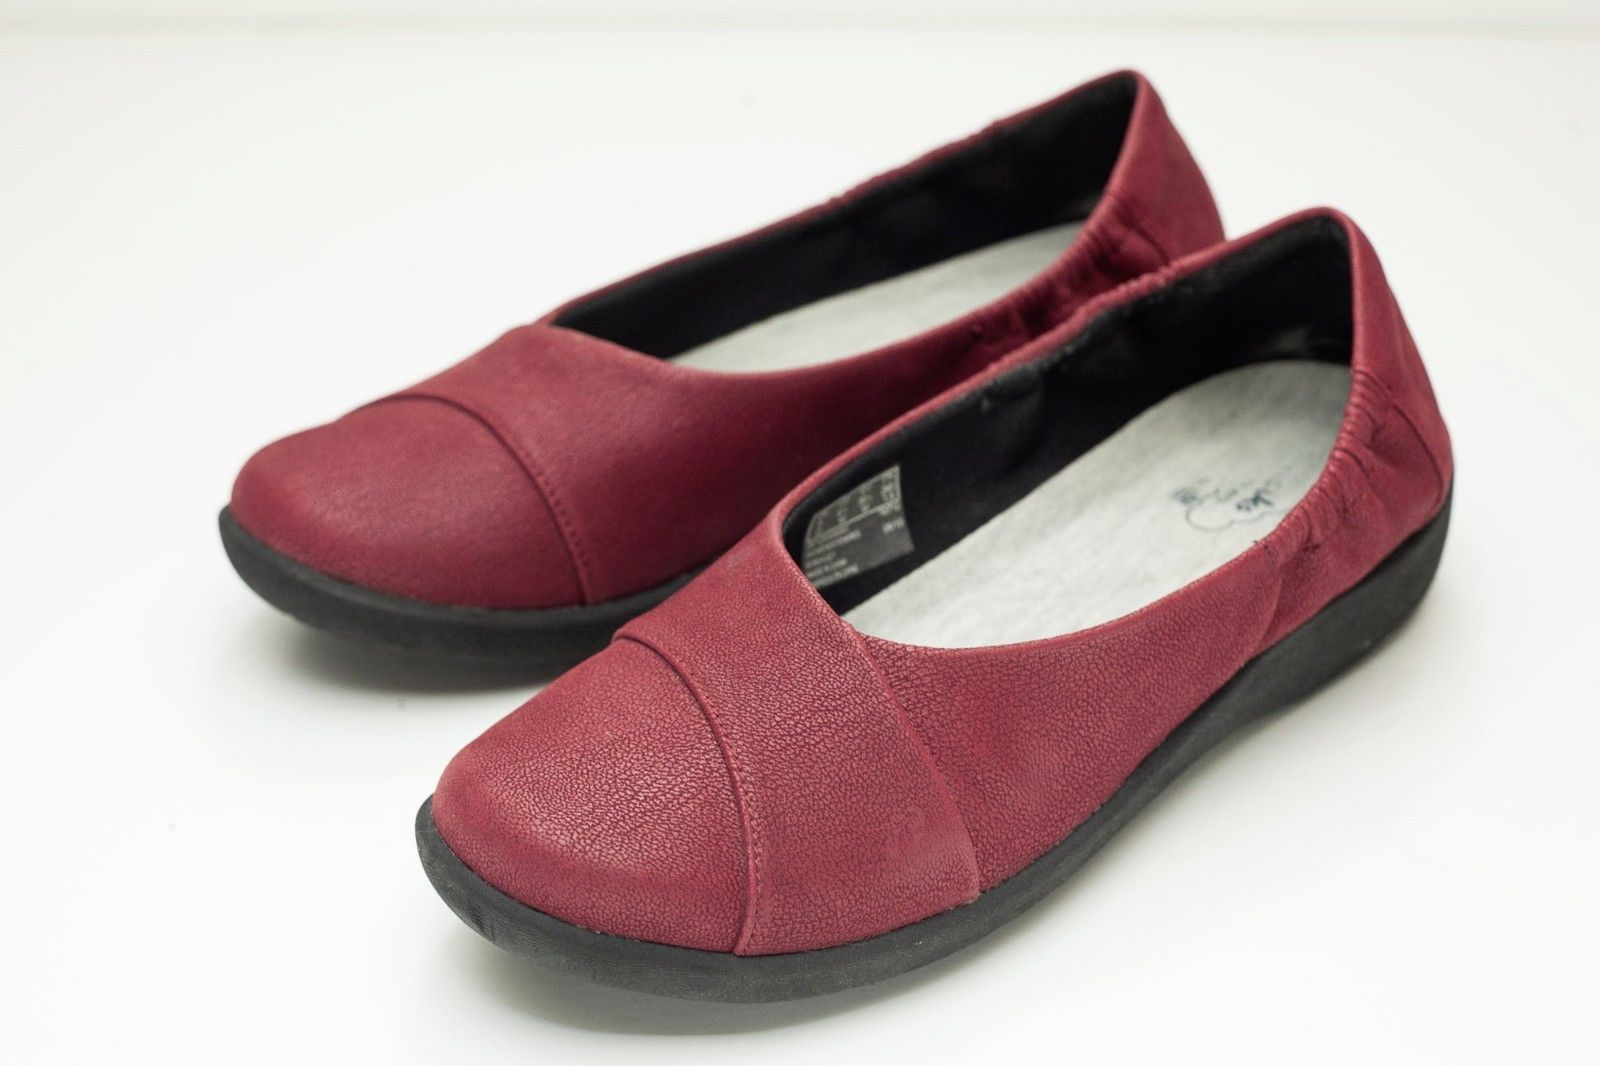 cc7f93ac748 Clarks 8.5 Red Ballet Flats Woman s Slip On and 50 similar items. 57